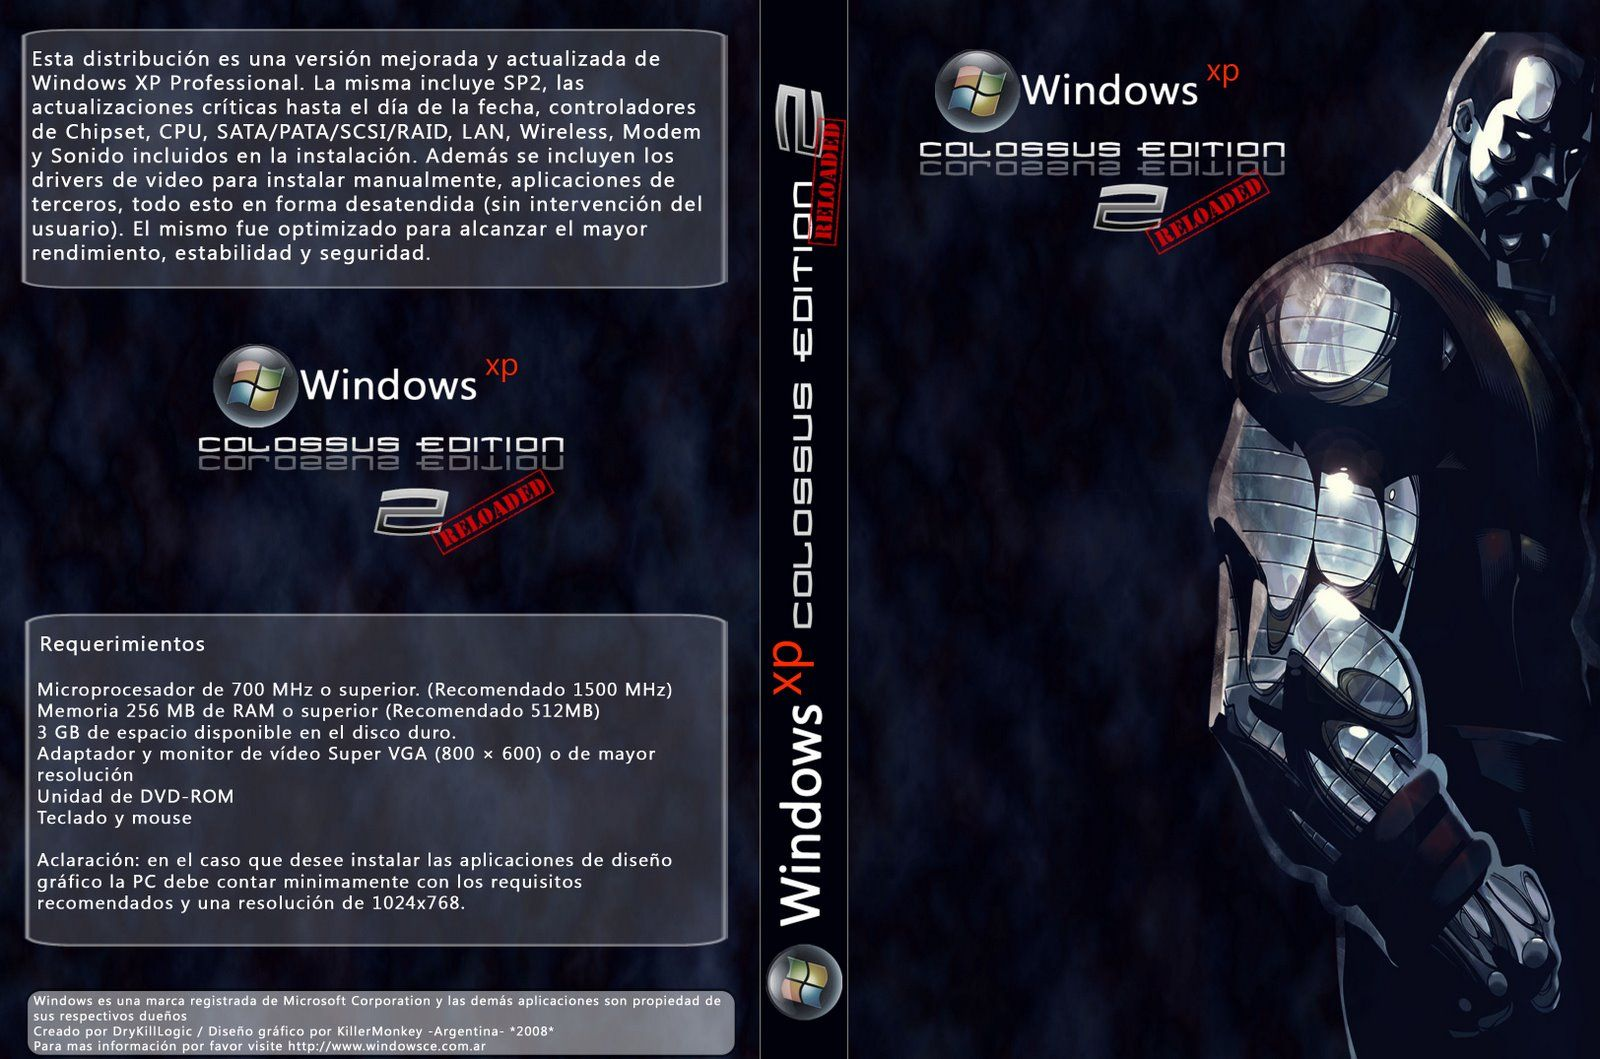 WindowsXpColossusEdition2Reloaded - Windows XP Colossus Edition v2.0 Reloaded [Español] [Booteable] [ULD]